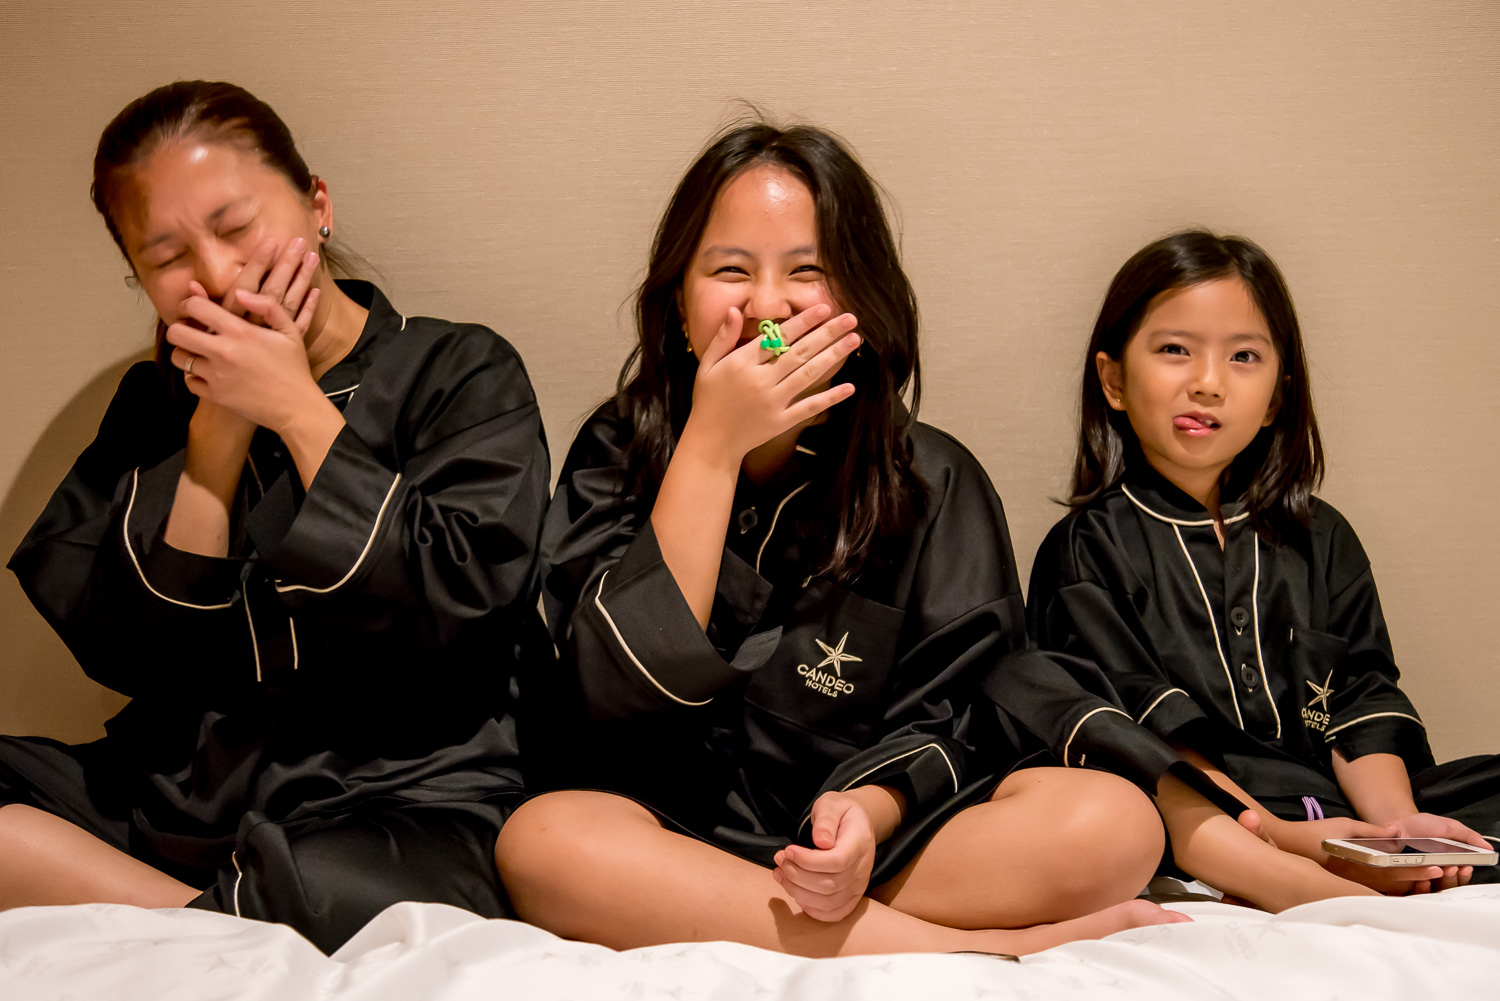 We wanted a photo because we had matching jammies and in the middle of the photo session, somebody farted and we ended up laughing. Any guesses on who's the culprit?